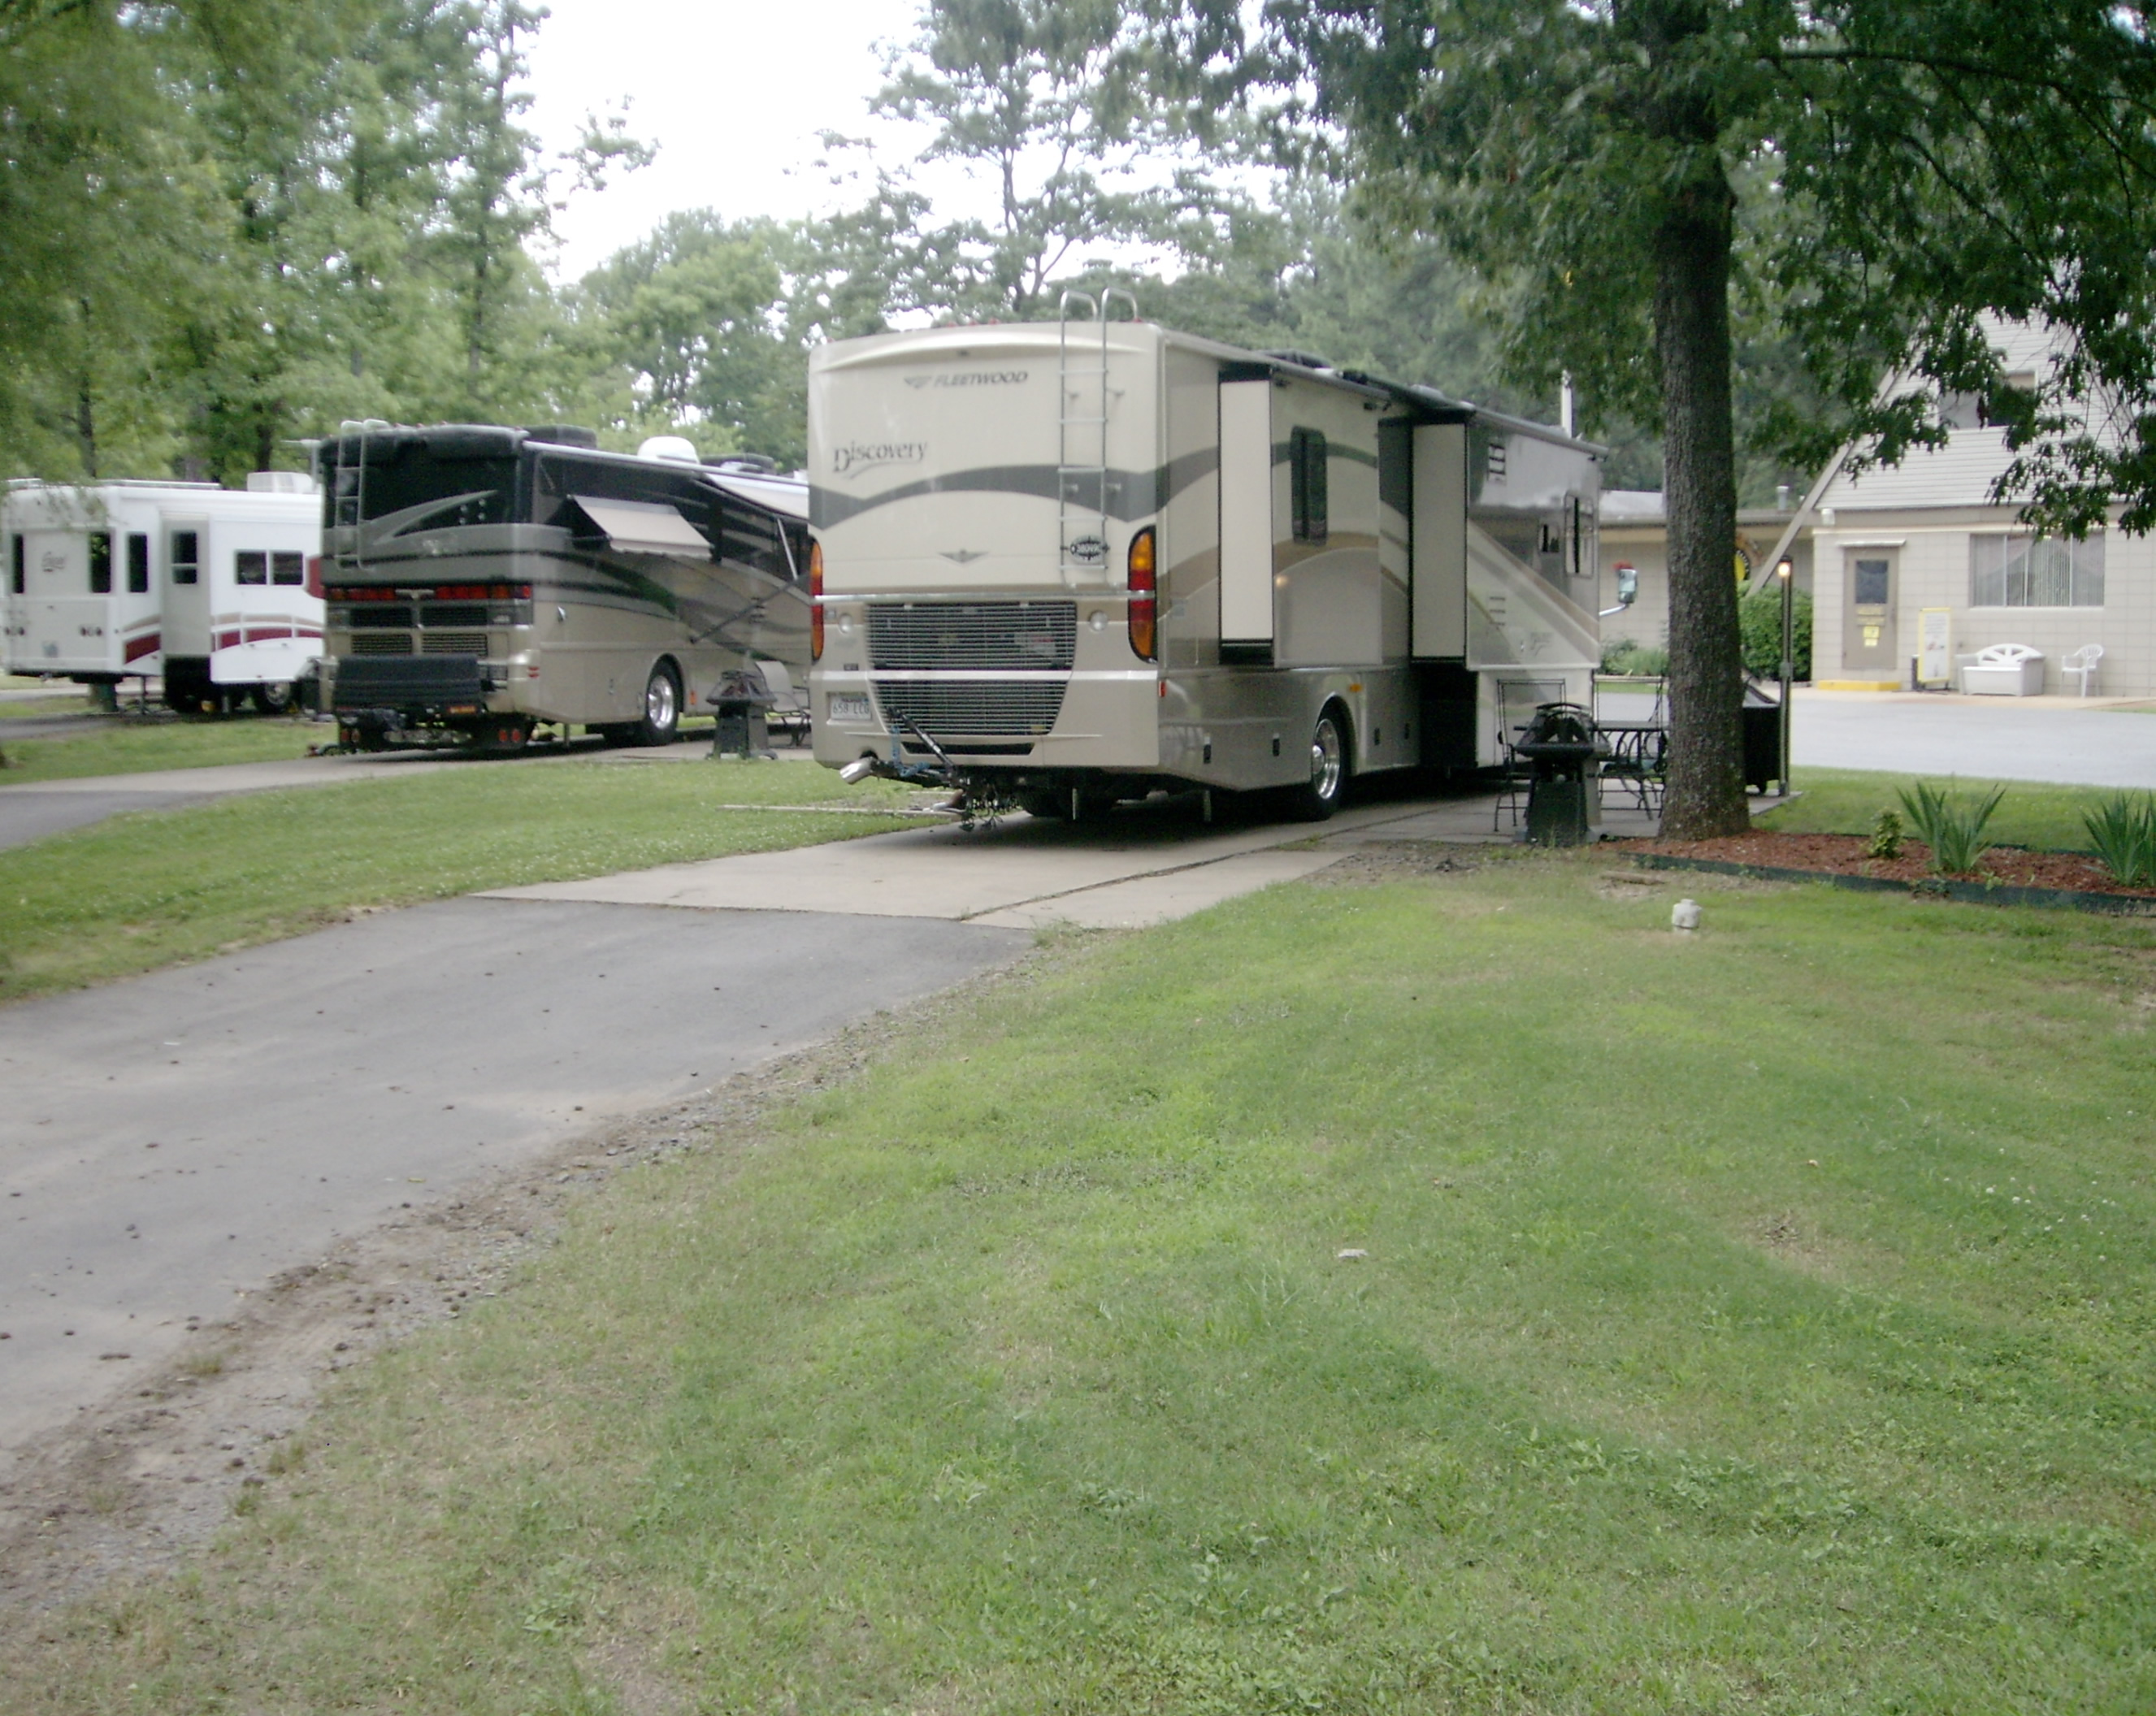 North Little Rock, Arkansas Campground | Little Rock North